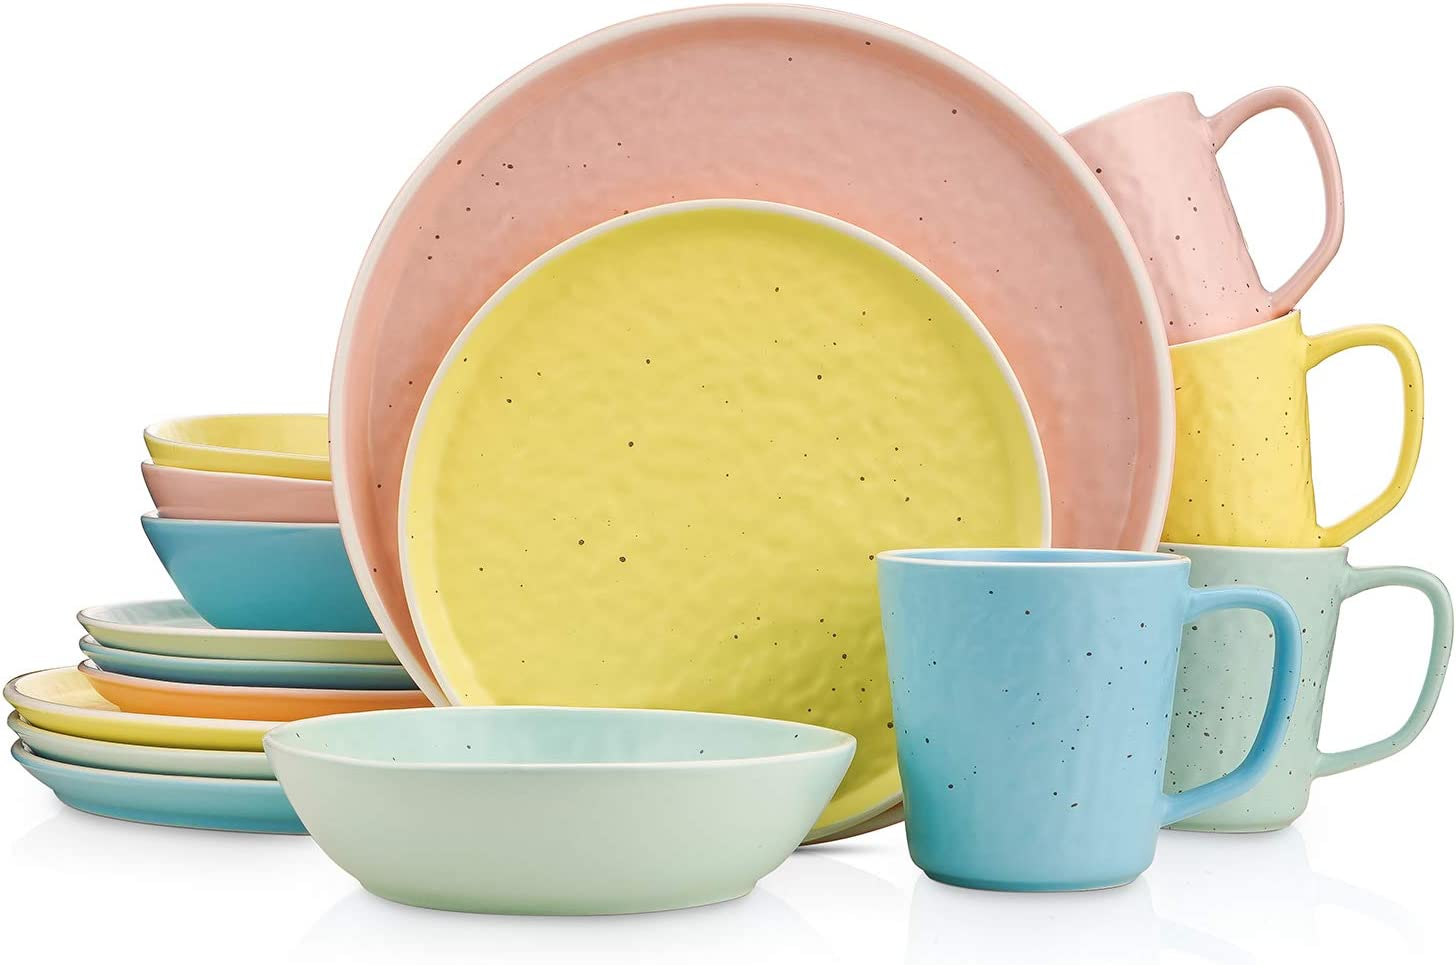 Stone lain Elena Mix and Match 16 Piece Stoneware Dinnerware Set, Service For 4, Yellow, Blue, Pink, Mint